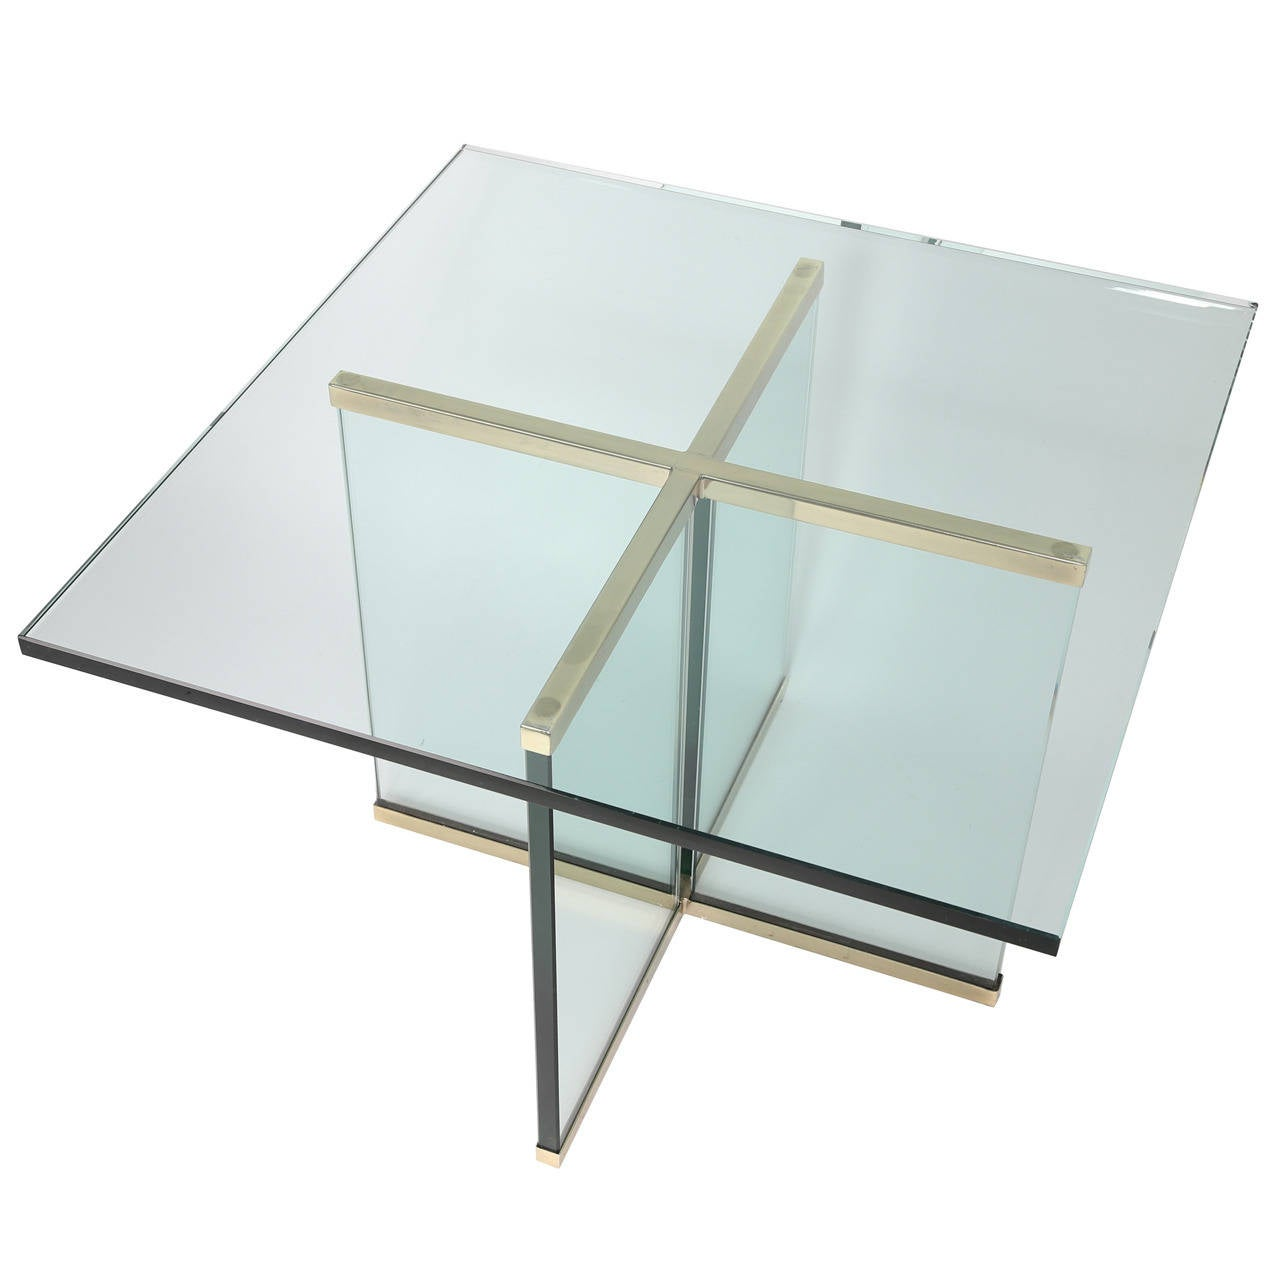 1970s leon rosen for pace collection brass and glass end table for 1970s leon rosen for pace collection brass and glass end table 1 geotapseo Choice Image